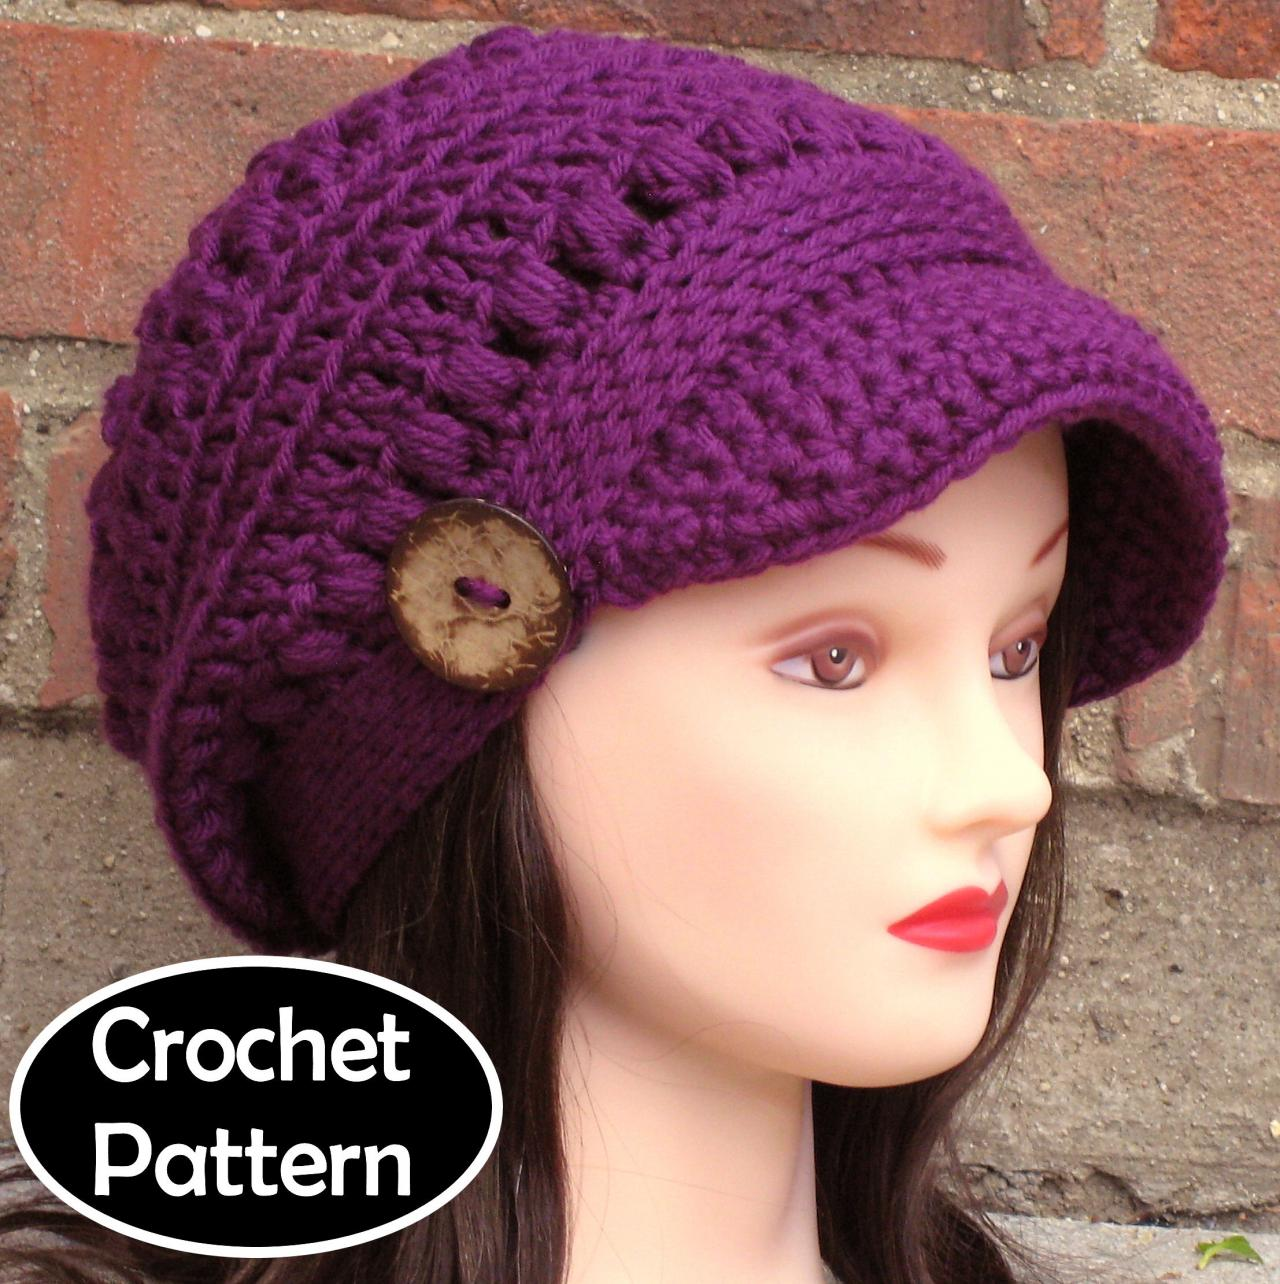 Crochet Hat Free Pattern Woman : CROCHET HAT PATTERN - Brooklyn Newsboy Hat Slouchy Beanie ...